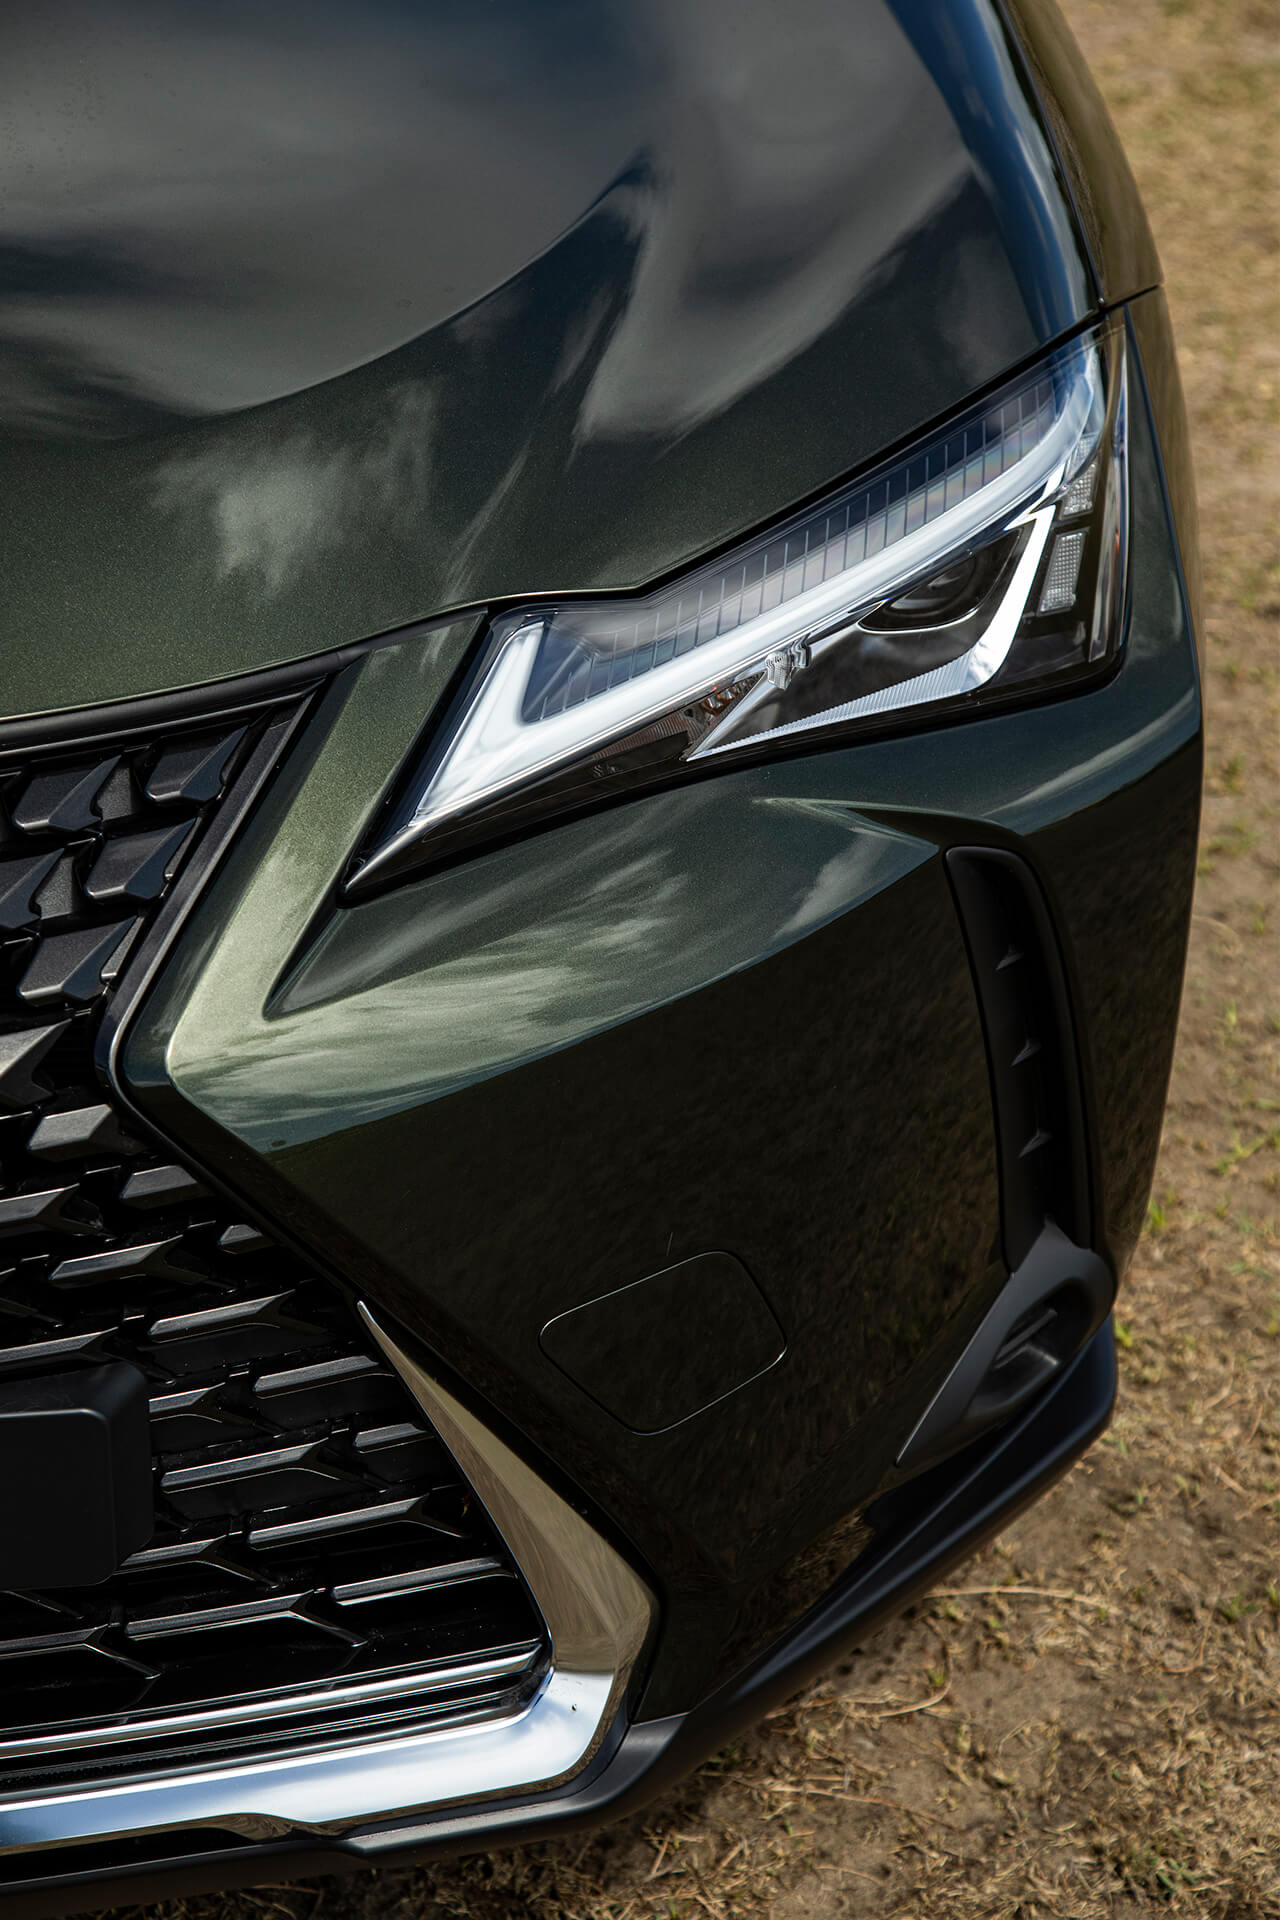 Headlight details of the Lexus UX